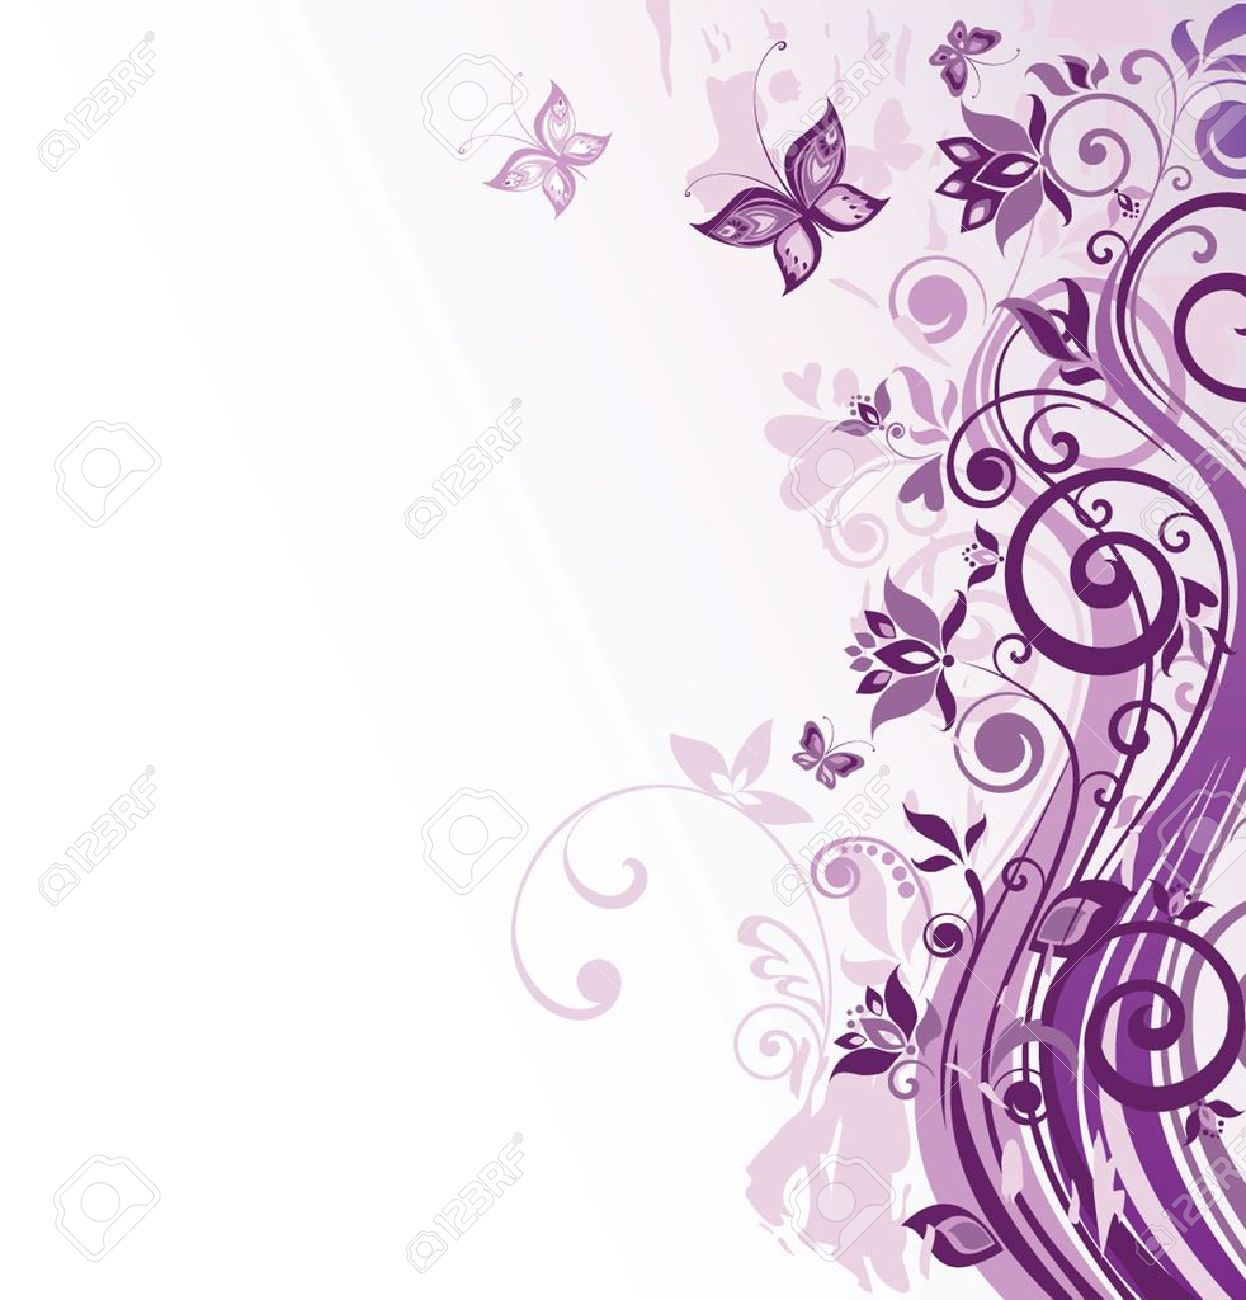 Lavender background wedding wedding invitation border for Lilac butterfly wallpaper